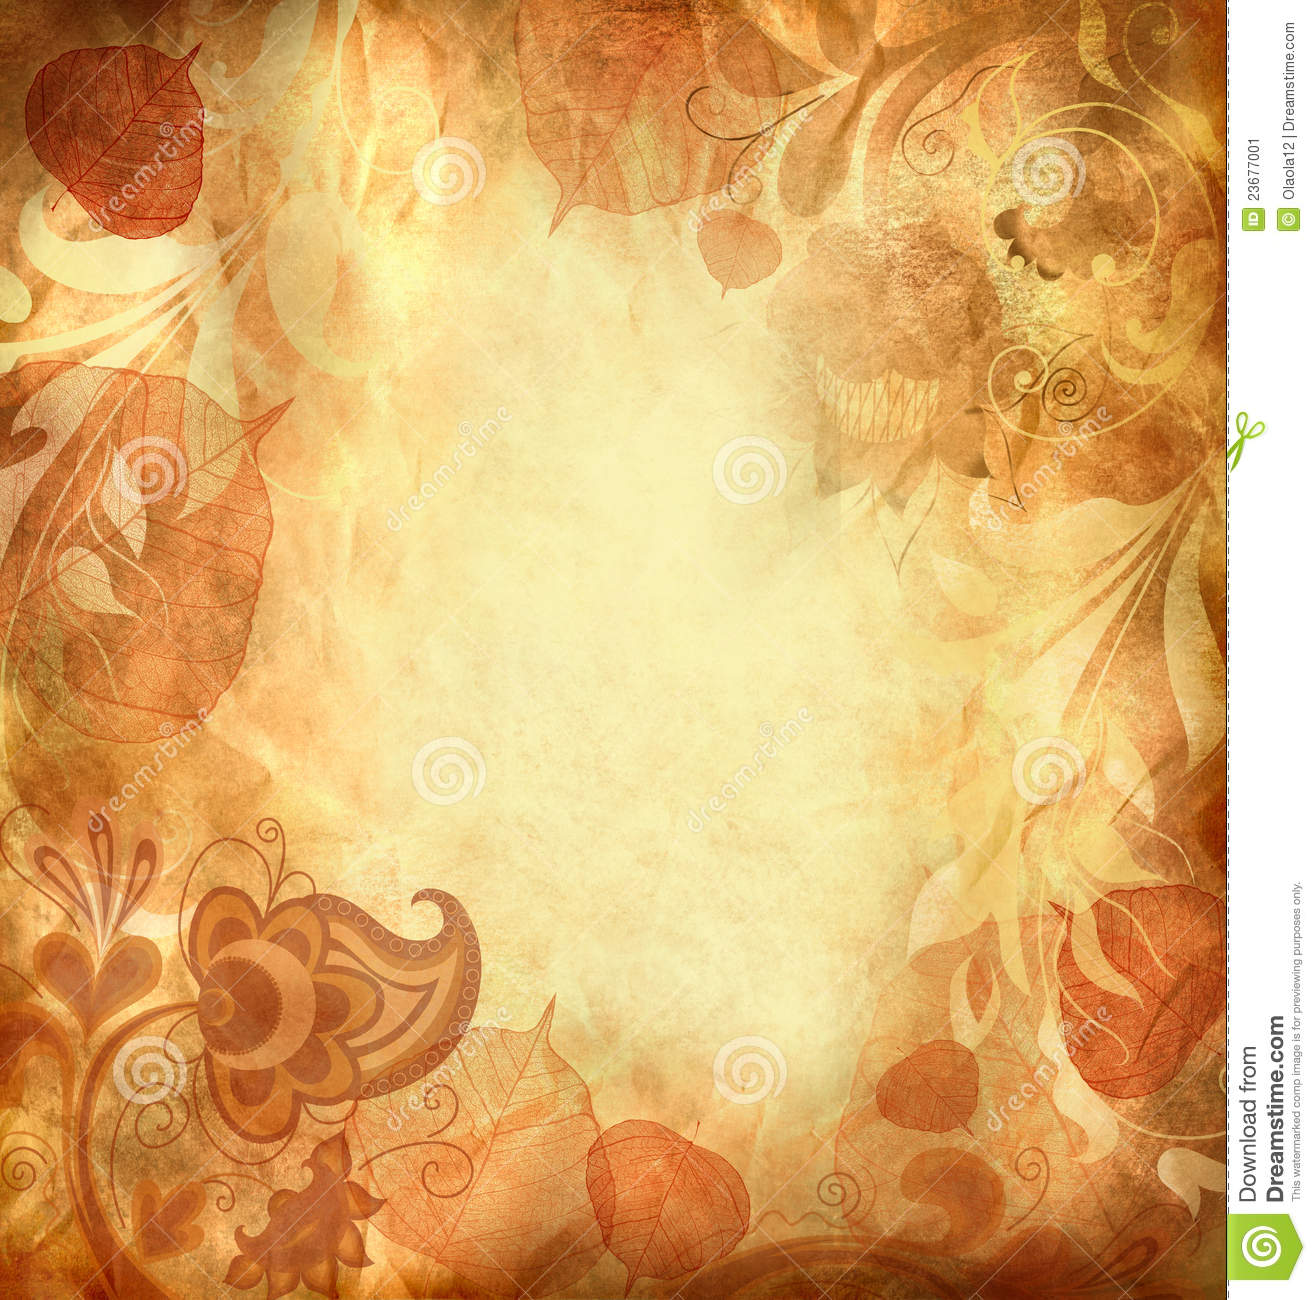 Fall Leaves And Pumpkins Wallpaper Vintage Background With Leaves And Patterns Stock Image